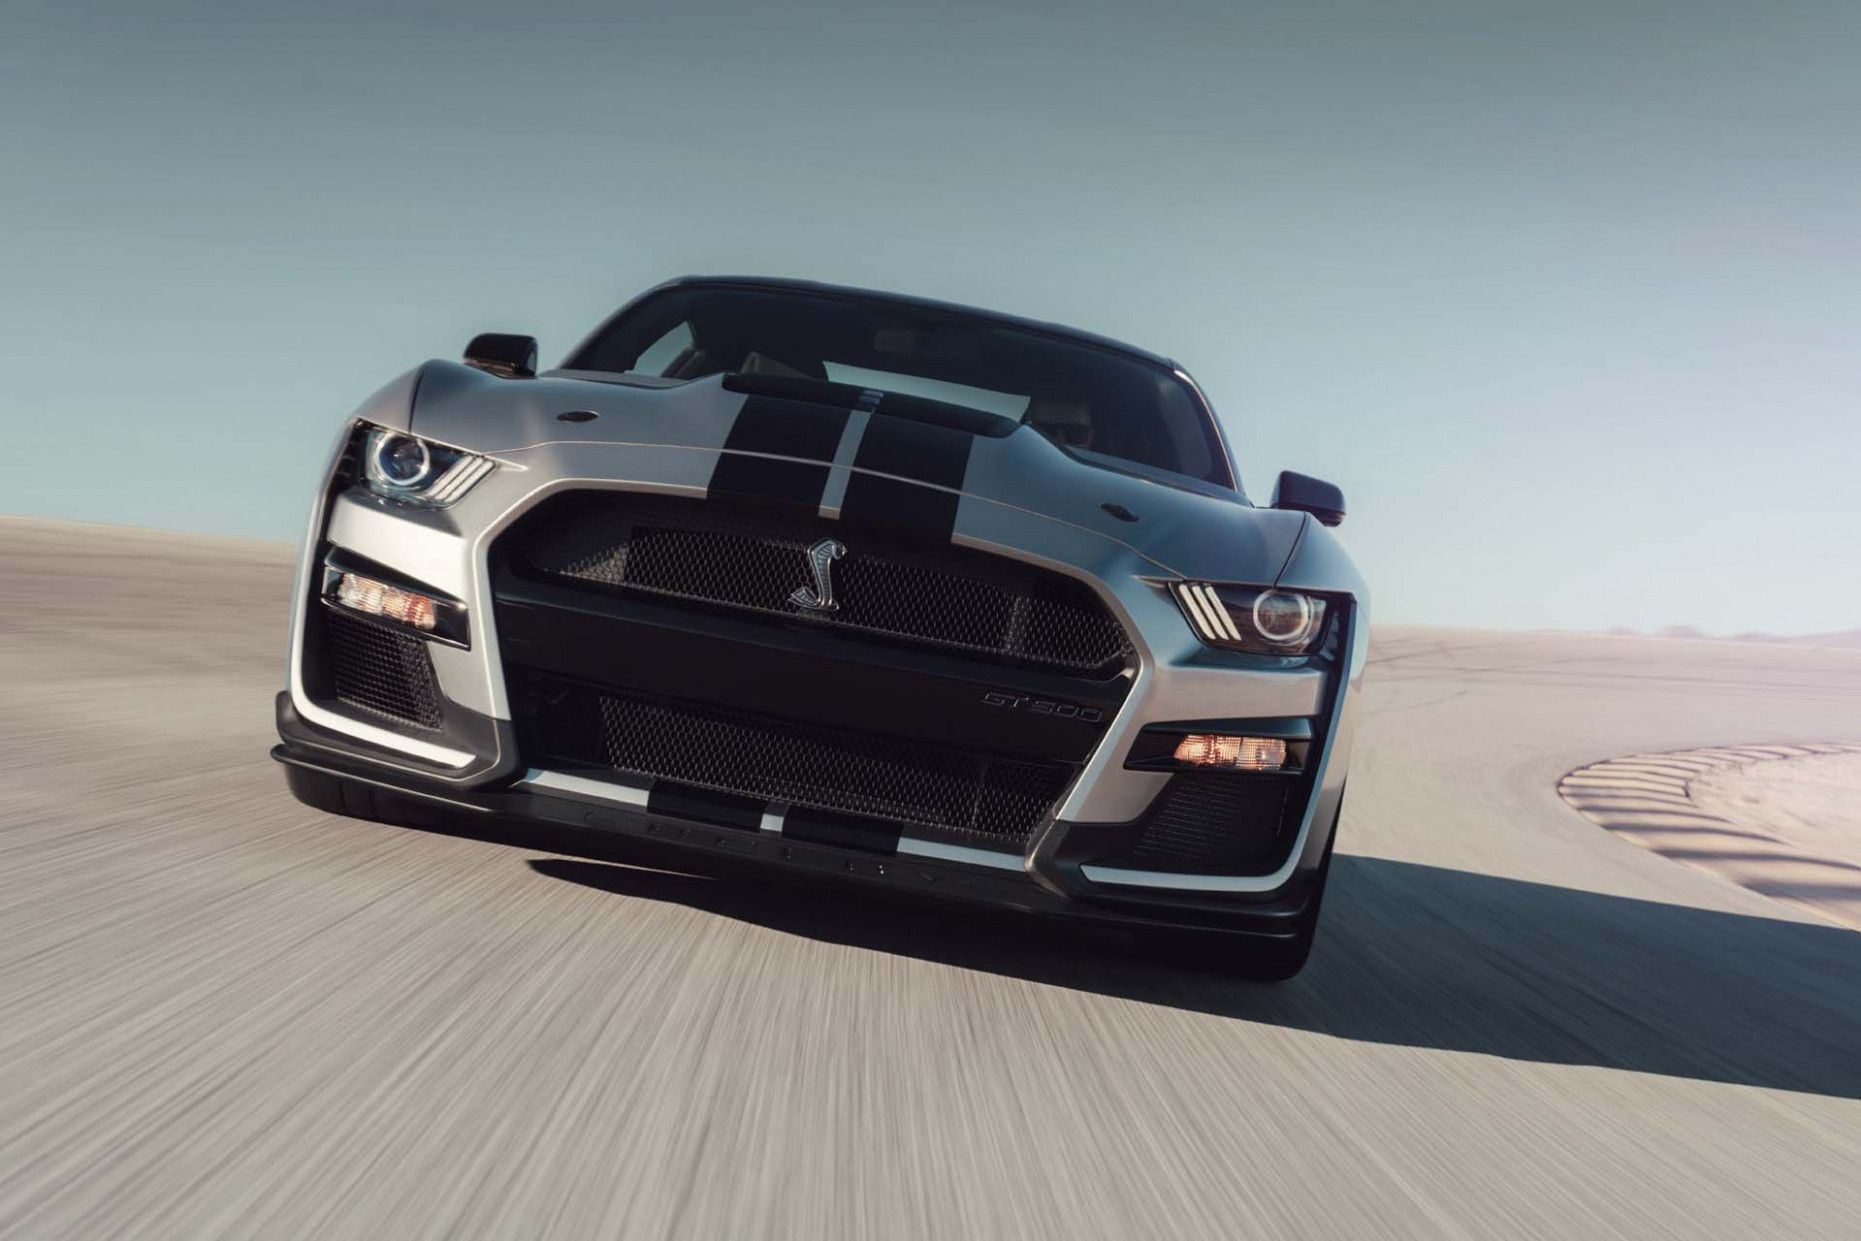 9 Picture 2020 Ford Gt Quarter Mile Time In 2020 Mustang Shelby Ford Mustang Shelby Gt500 New Ford Mustang